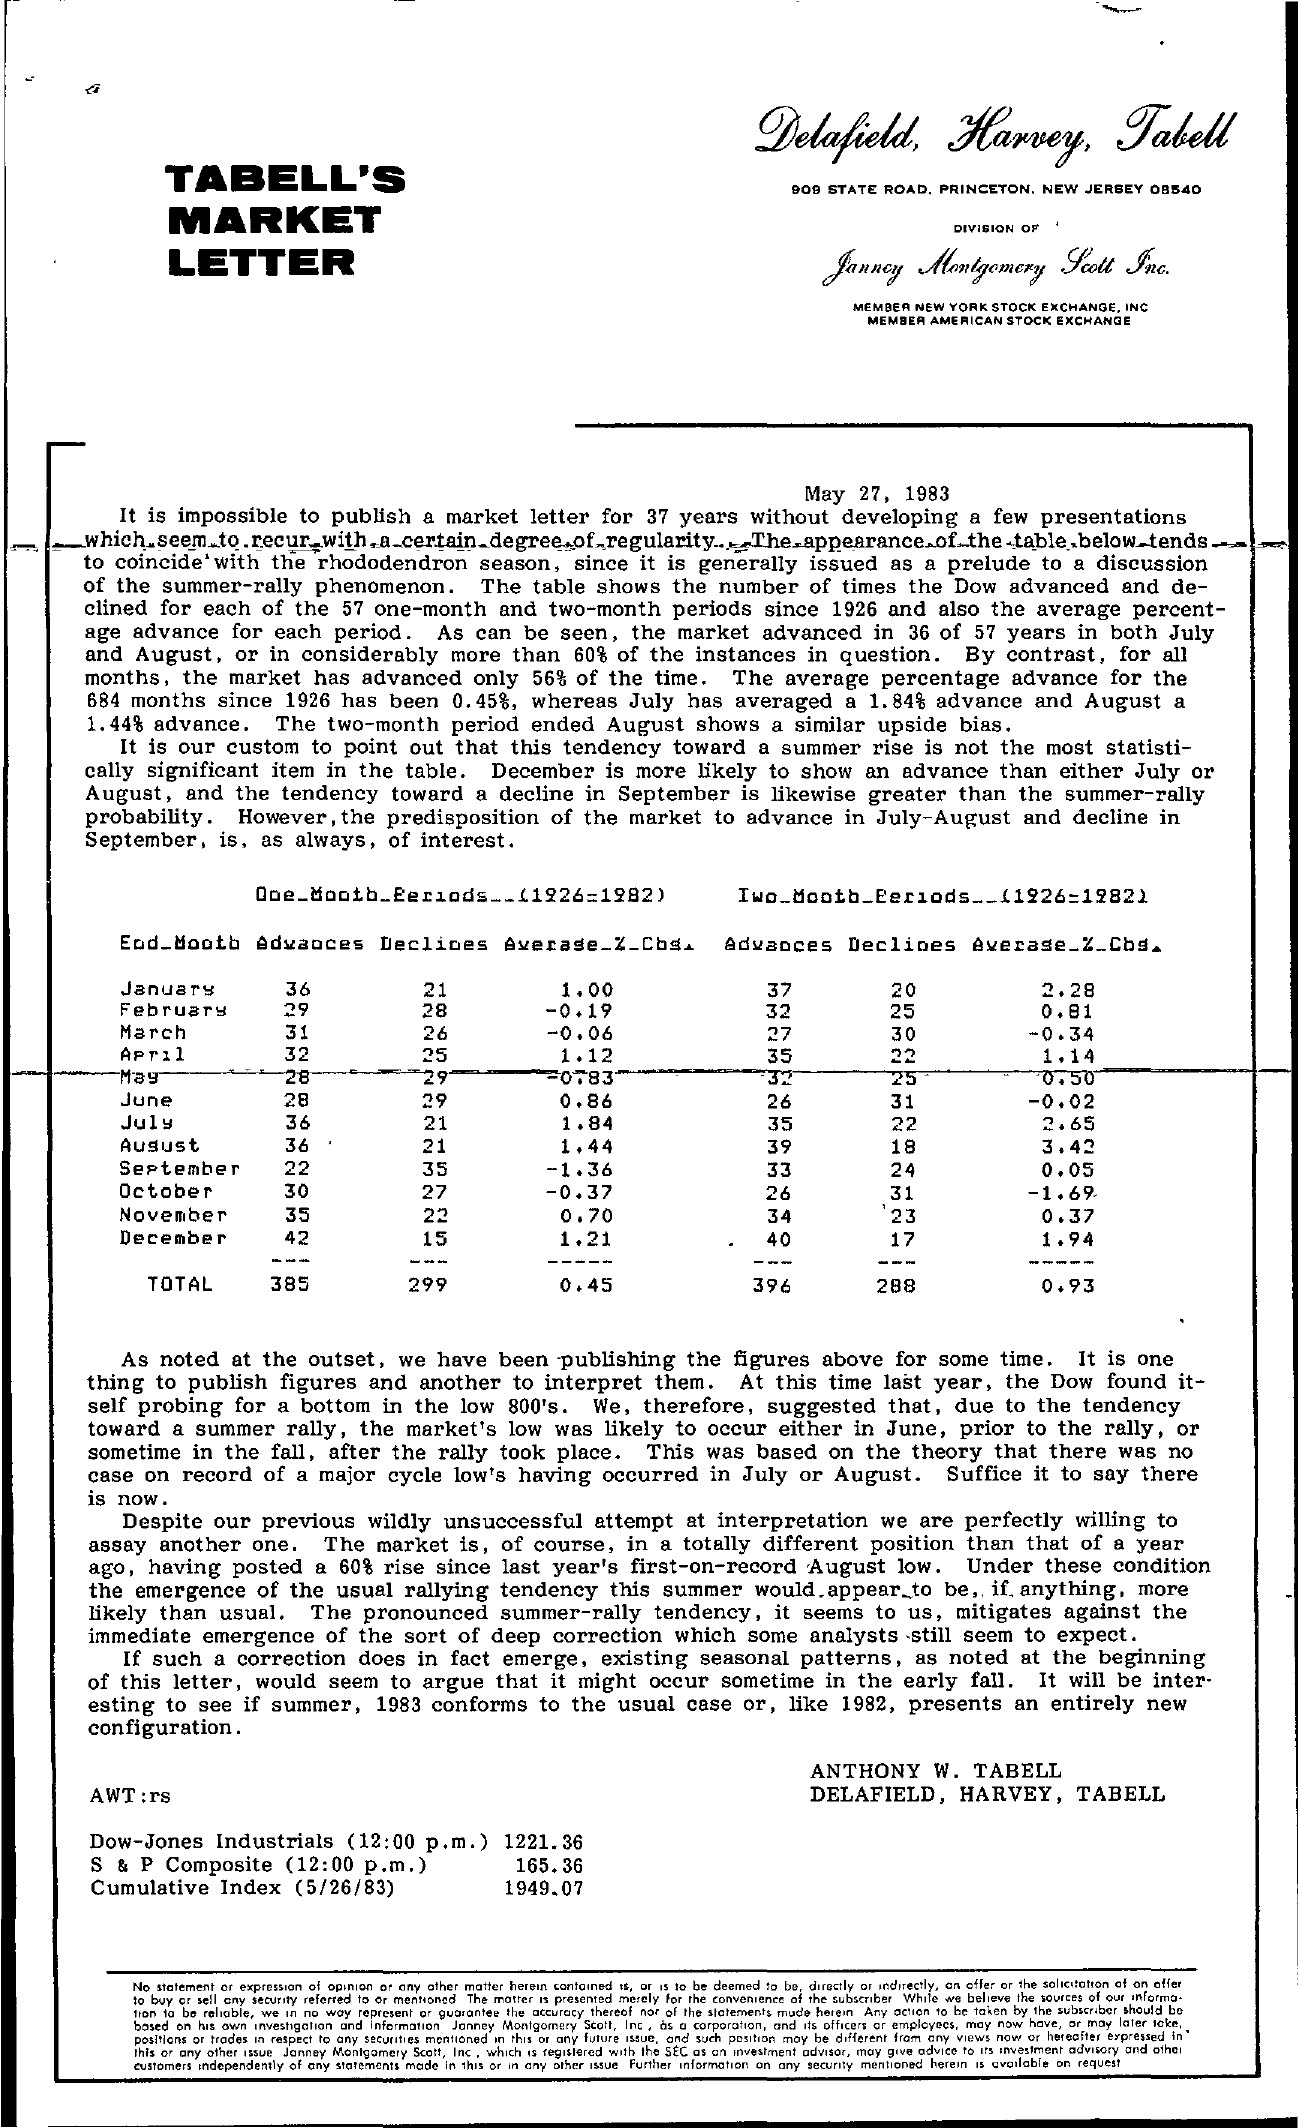 Tabell's Market Letter - May 27, 1983